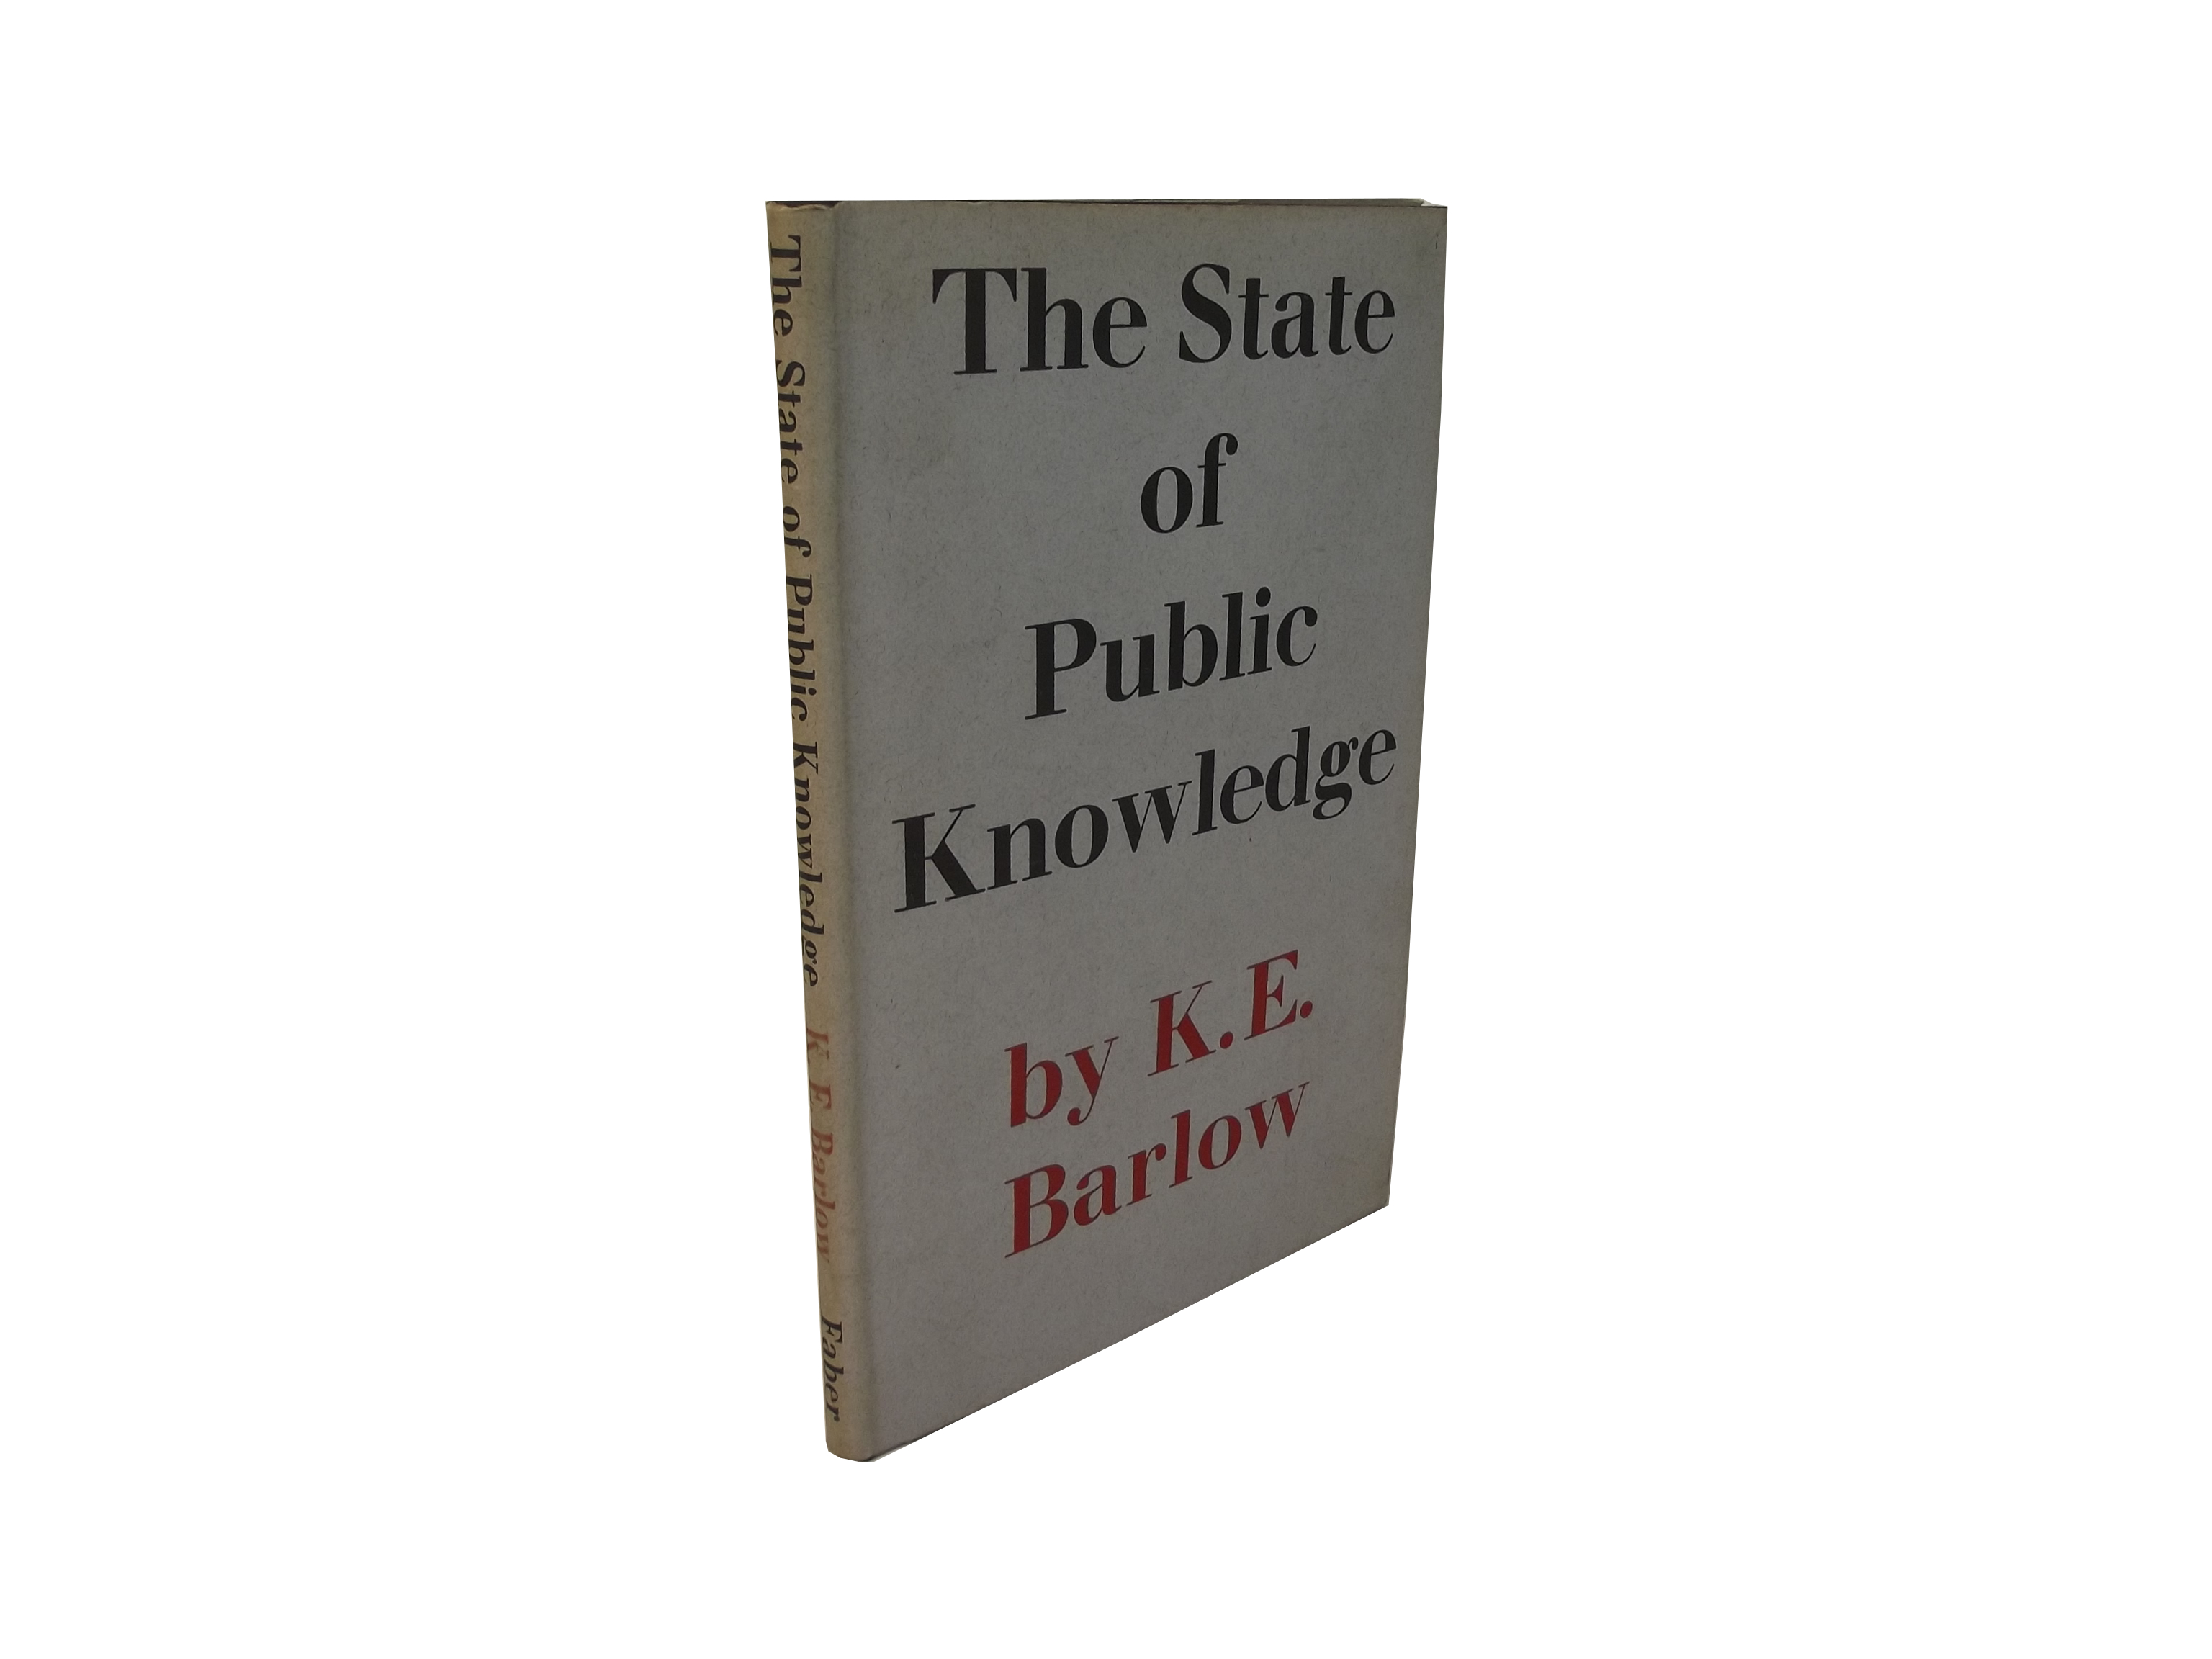 State of Public Knowledge